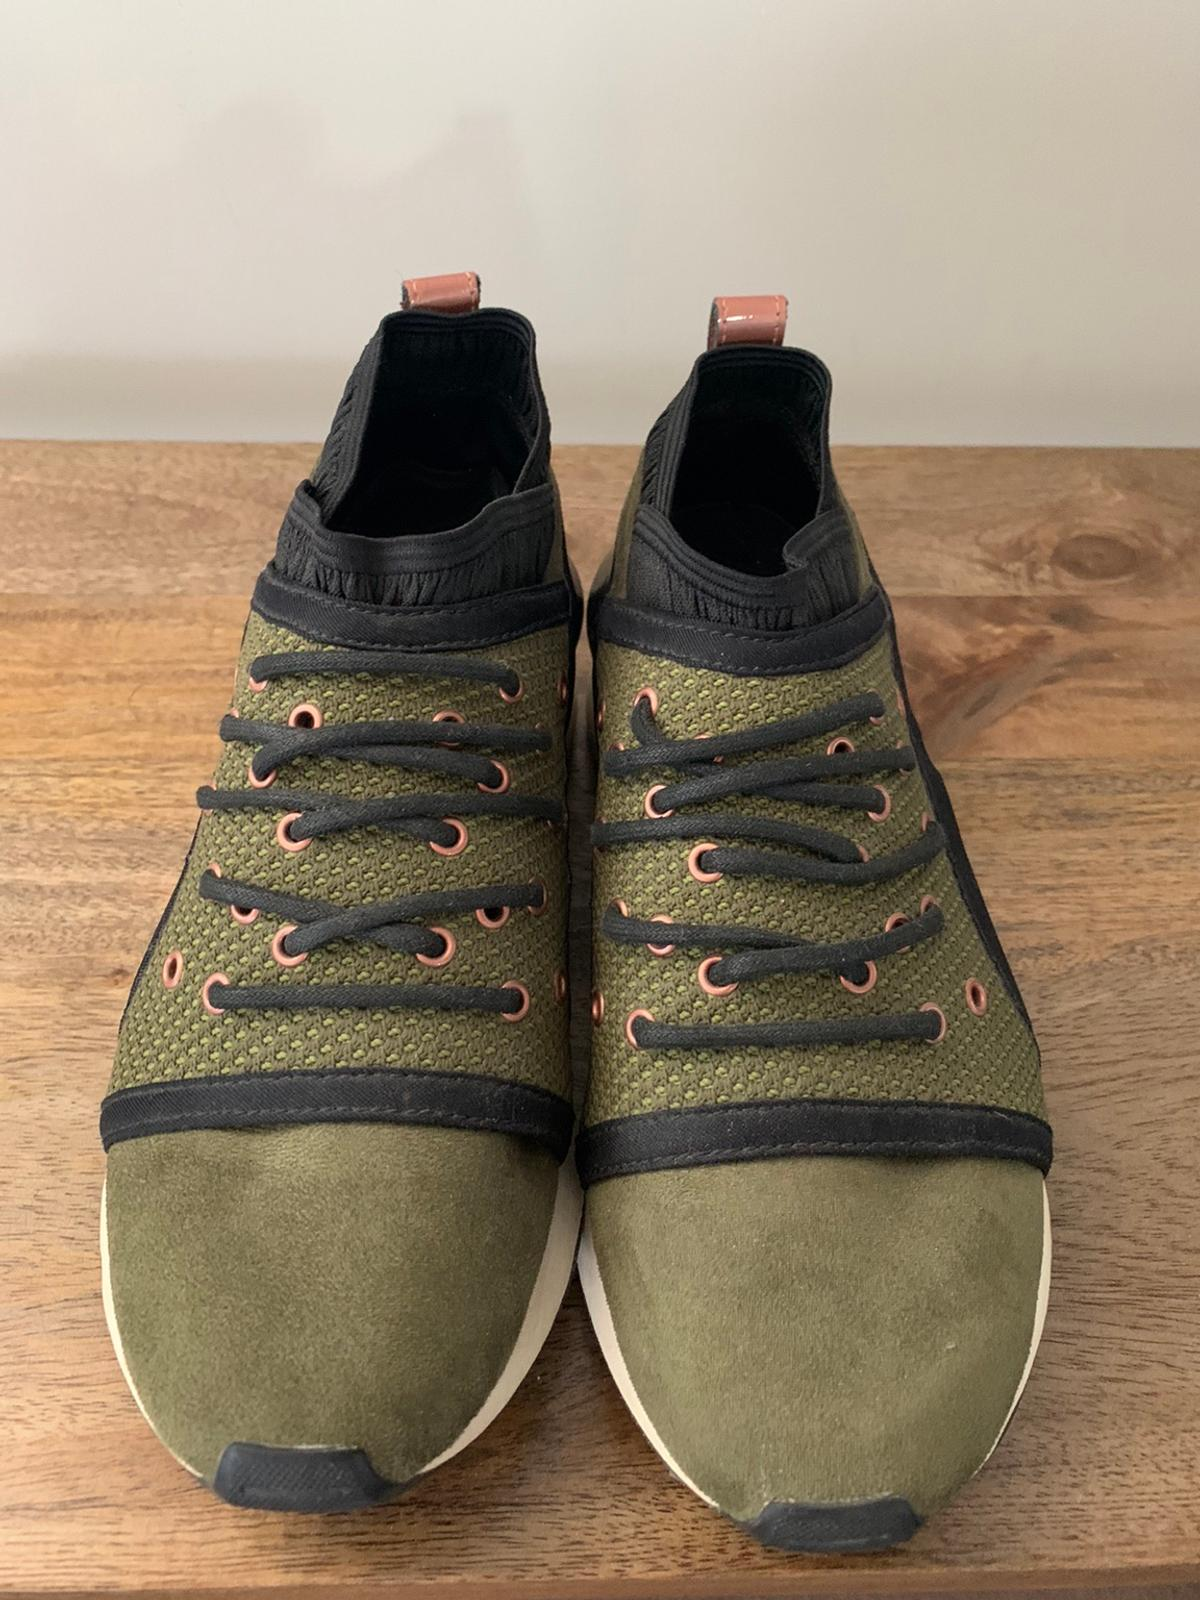 Khaki and rose gold puma trainers. Size 5. Only worn a handful of times. There is a little creasing in the rose gold strip at the back otherwise in good condition.